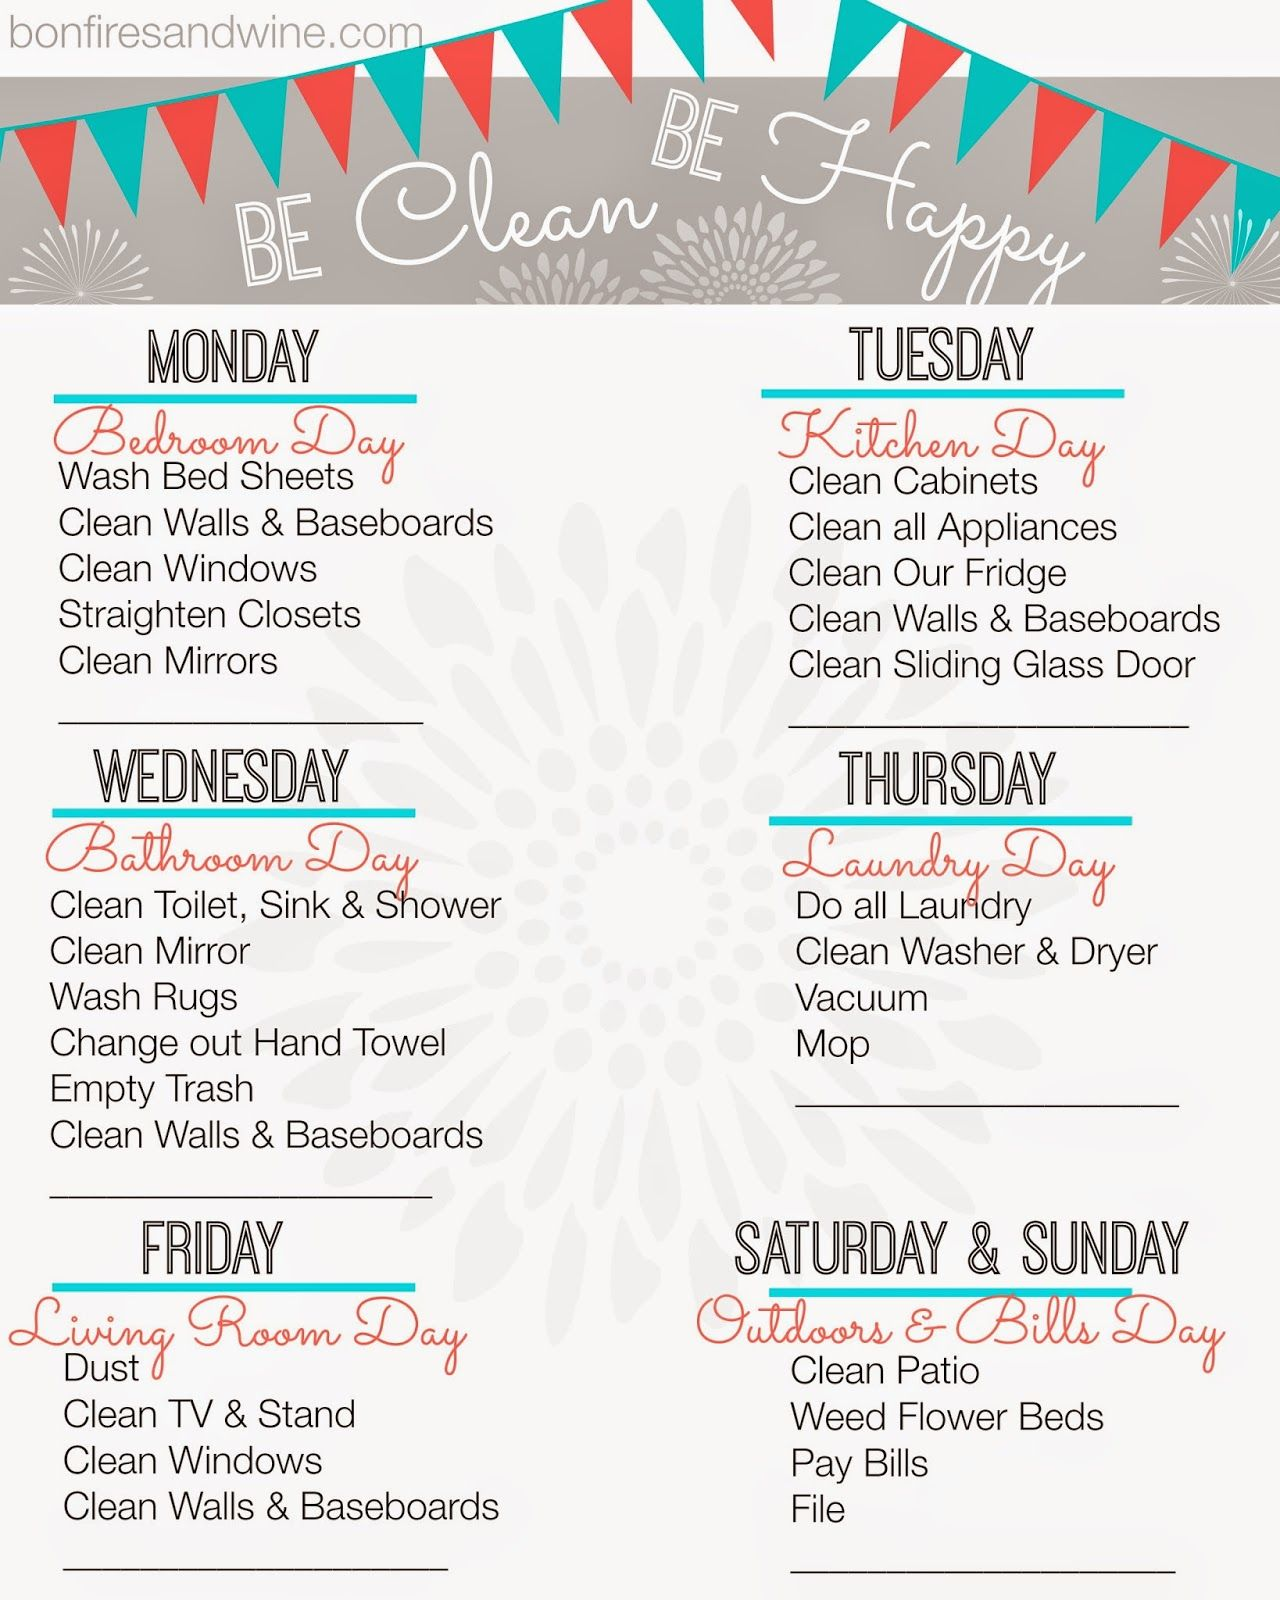 Free Printable Cleaning Schedule That Includes A Reminder To Pay Bills